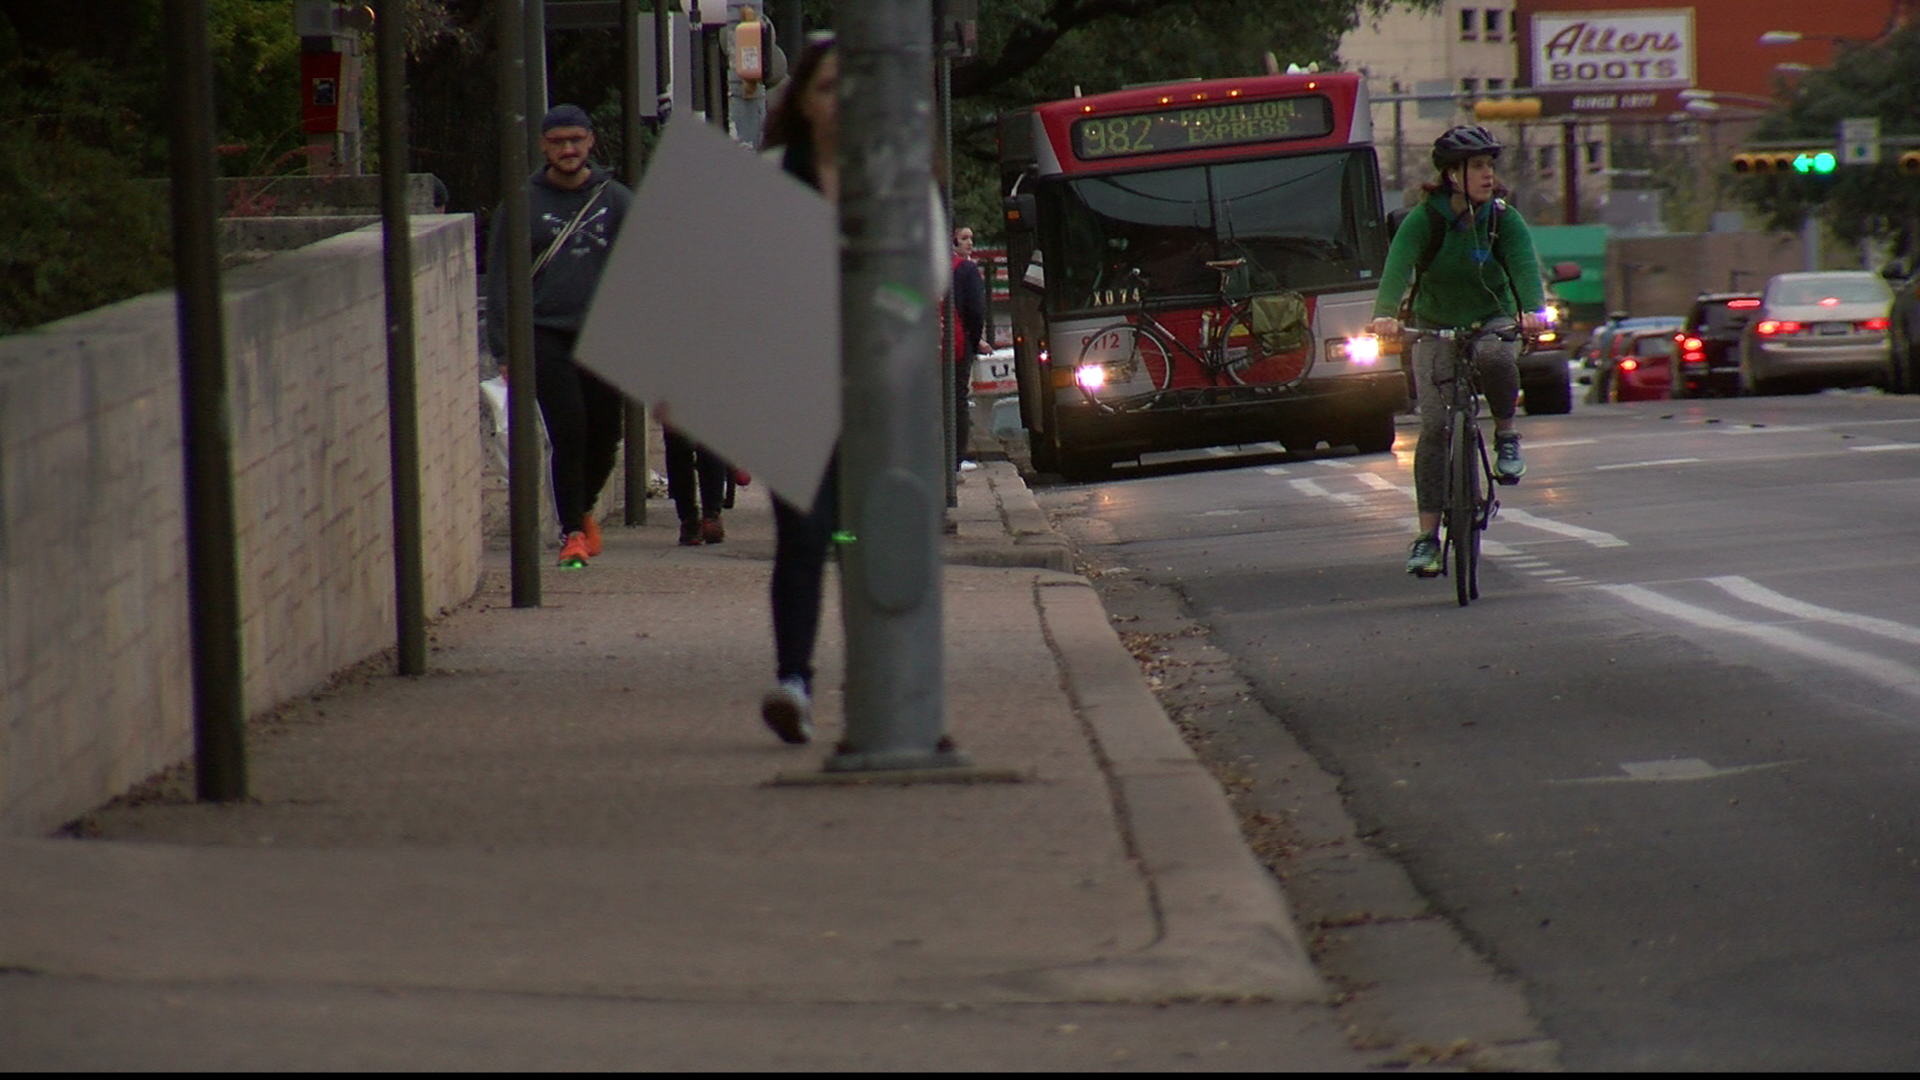 Some traffic changes could be in store for Guadalupe Street near the University of Texas at Austin campus. The City of Austin is looking at ways to make Guadalupe a less congested corridor. (CBS Austin)